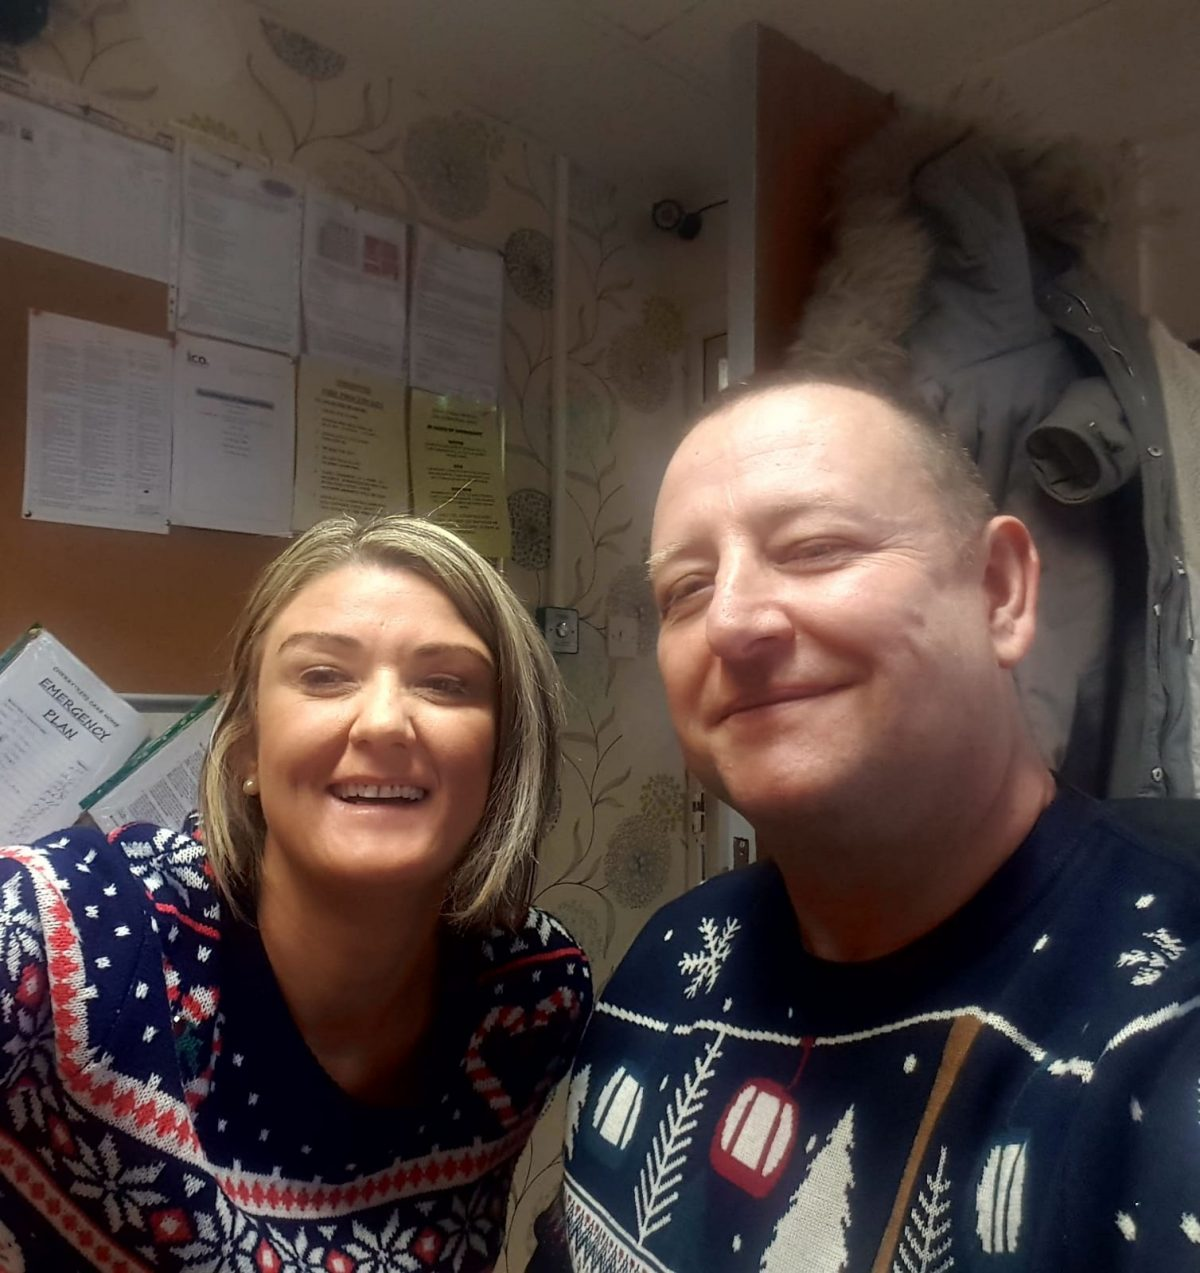 CHRISTMAS JUMPER DAY AT CHERRY TREES